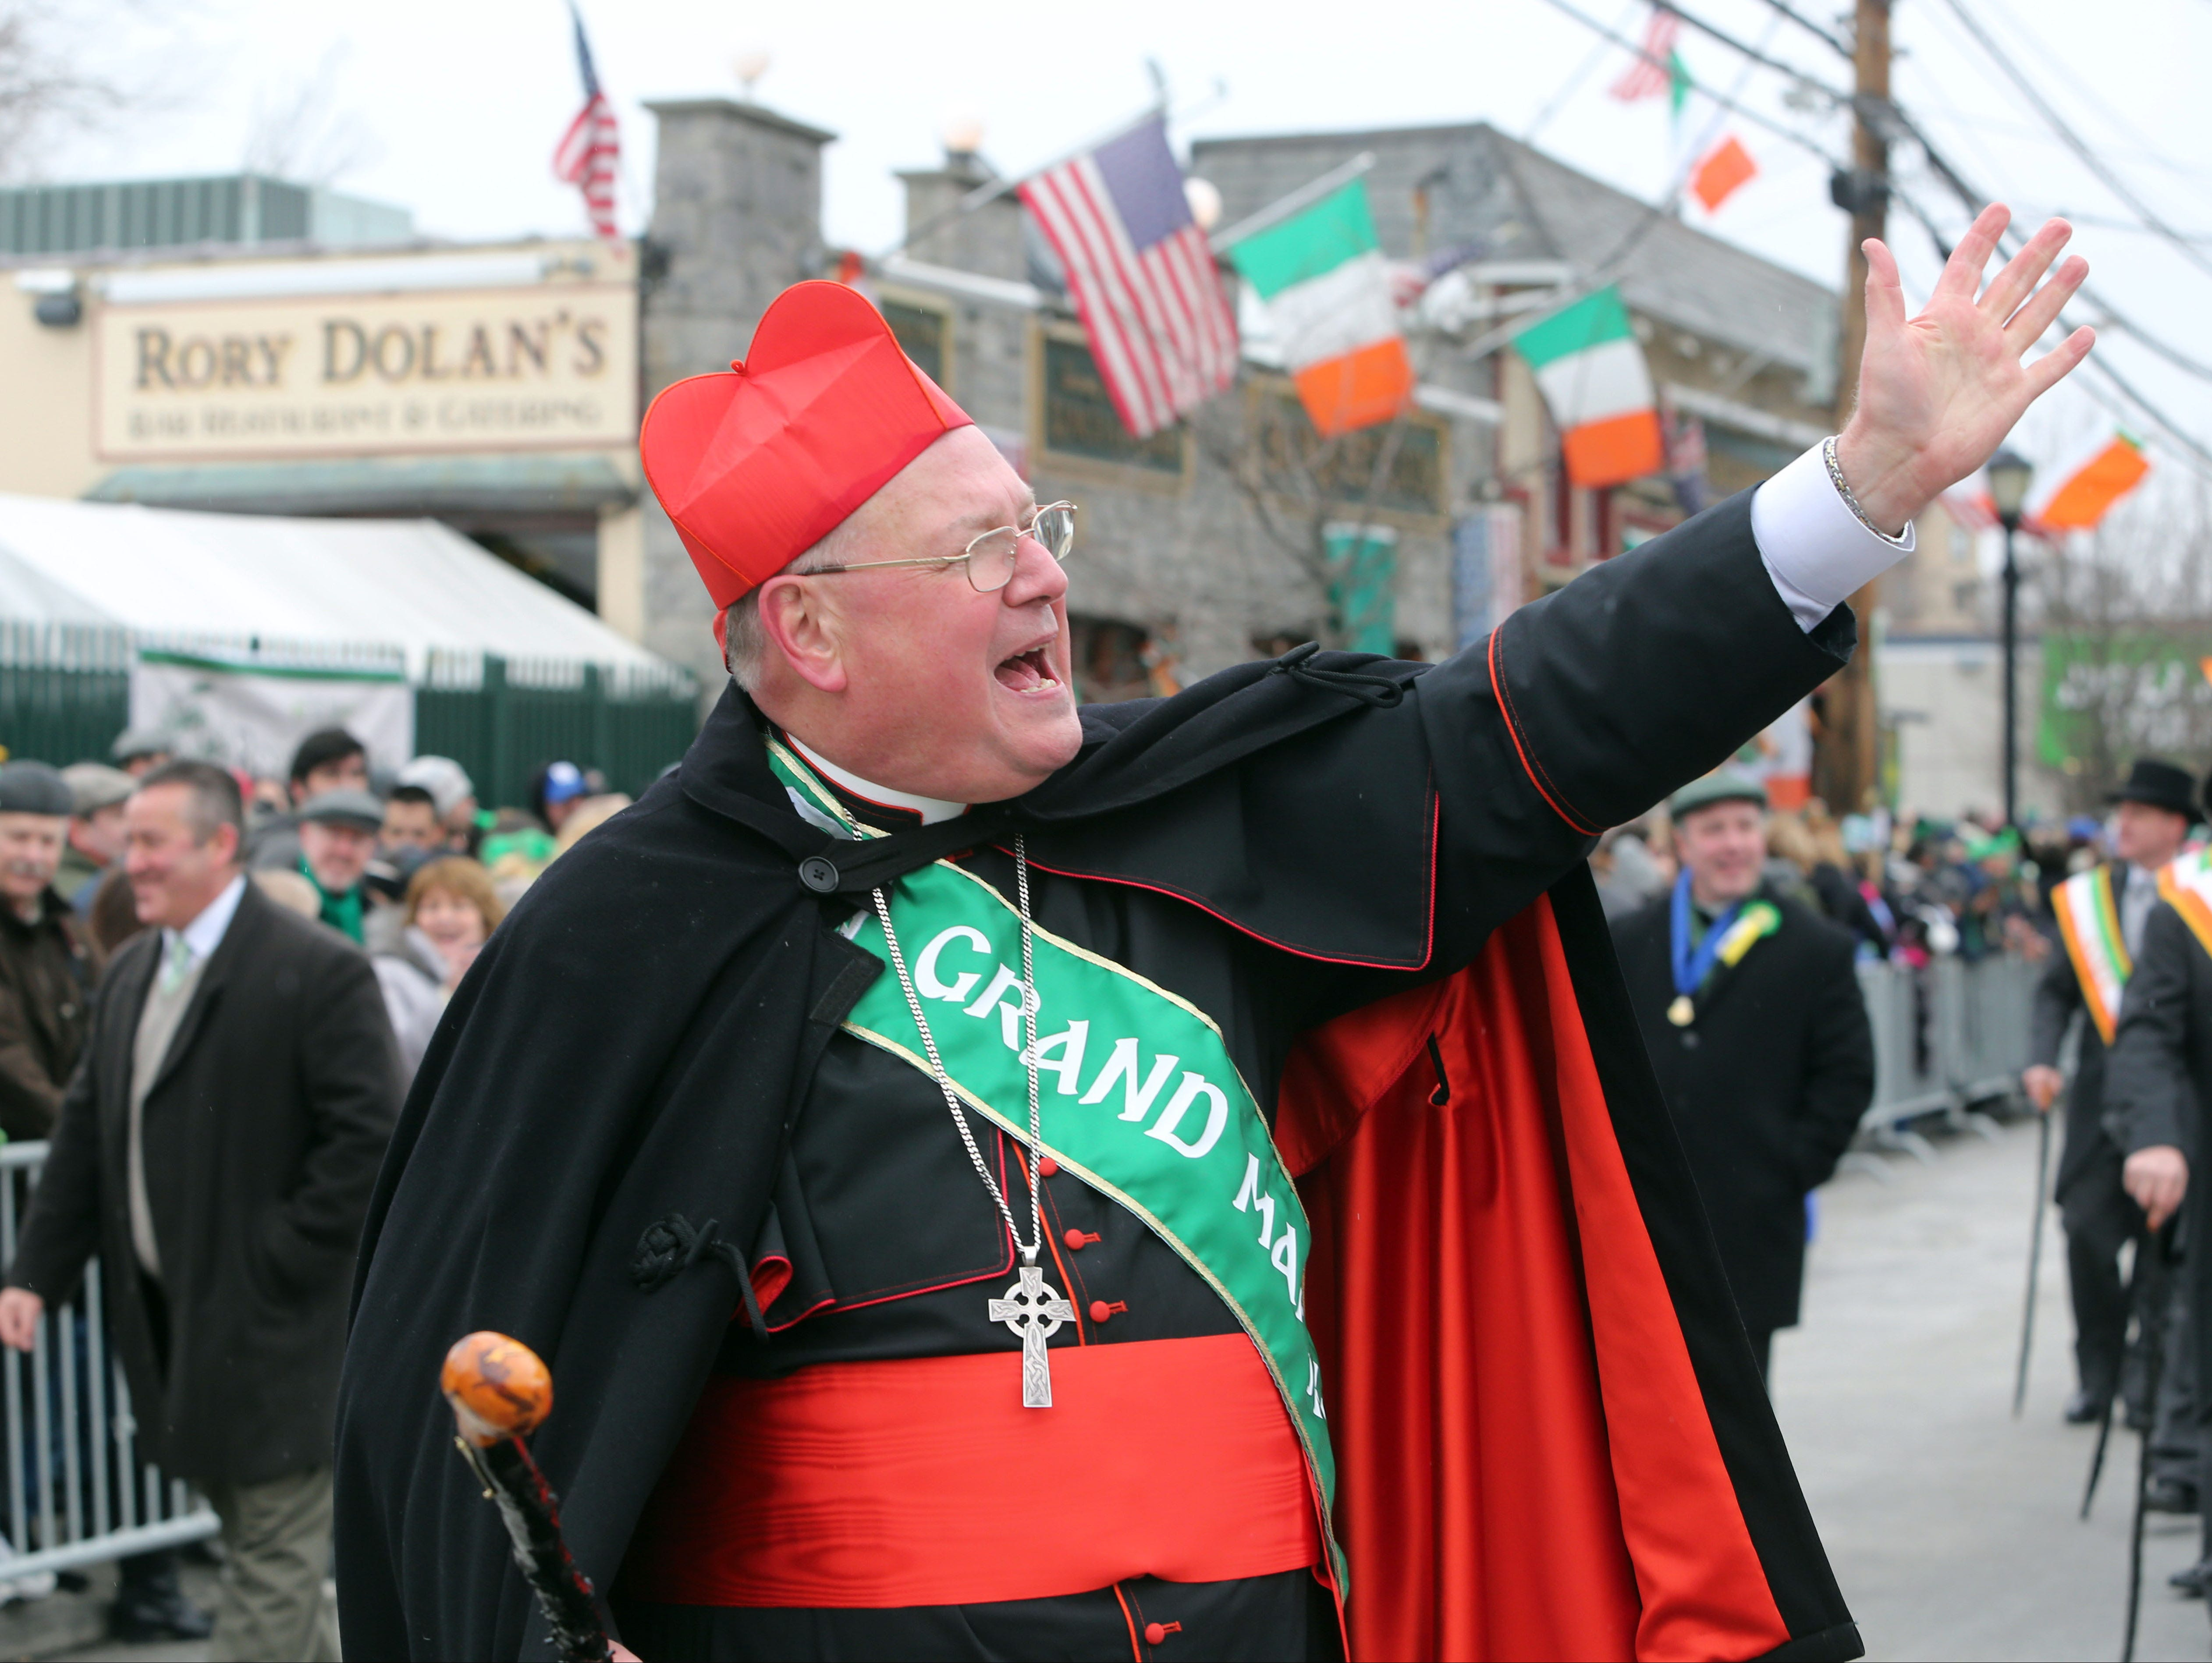 Exclusive to Insiders, a sneak peek at area St. Patrick's Day Parades.